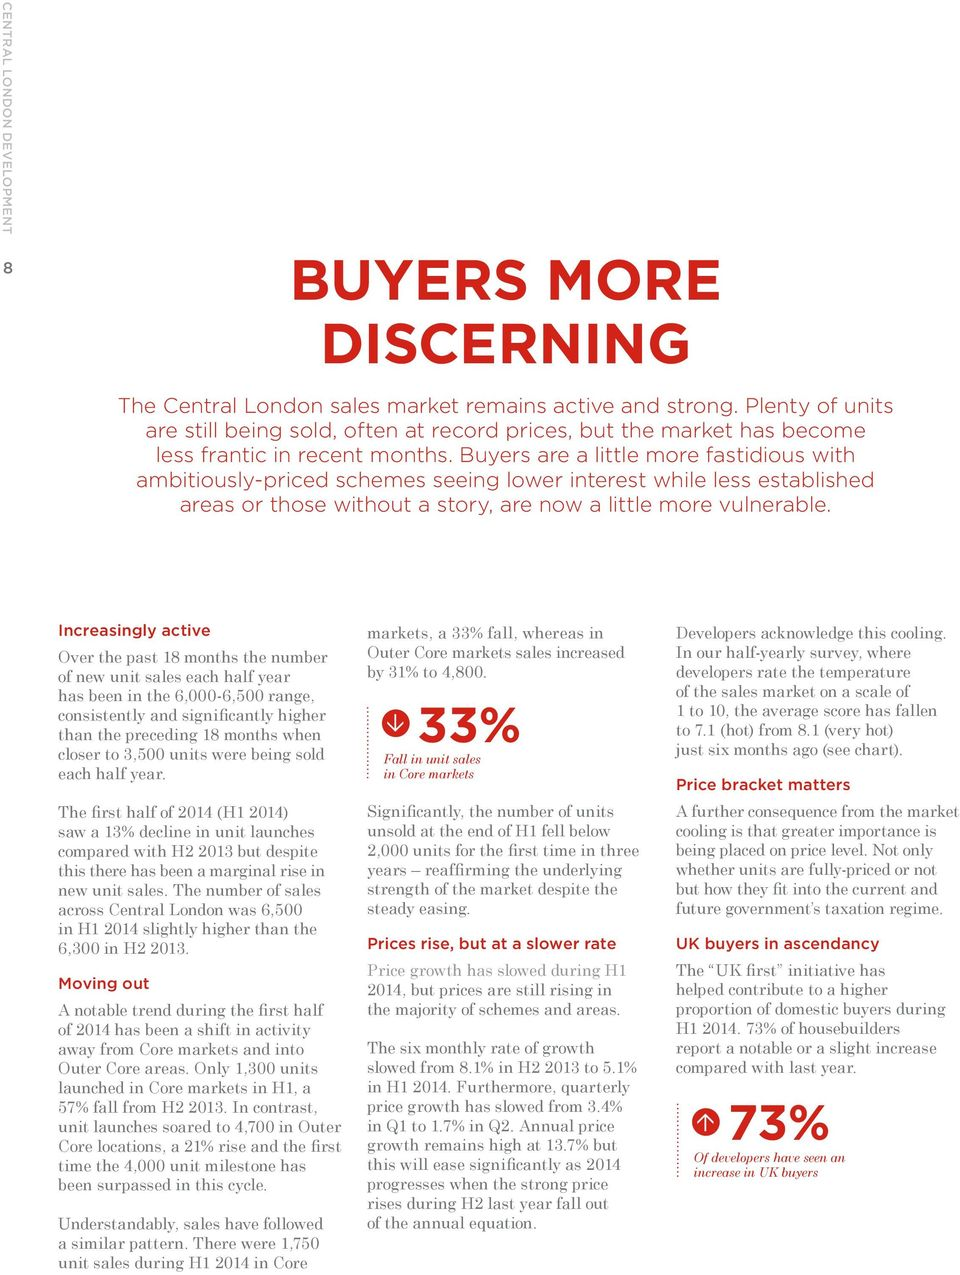 Buyers are a little more fastidious with ambitiously-priced schemes seeing lower interest while less established areas or those without a story, are now a little more vulnerable.